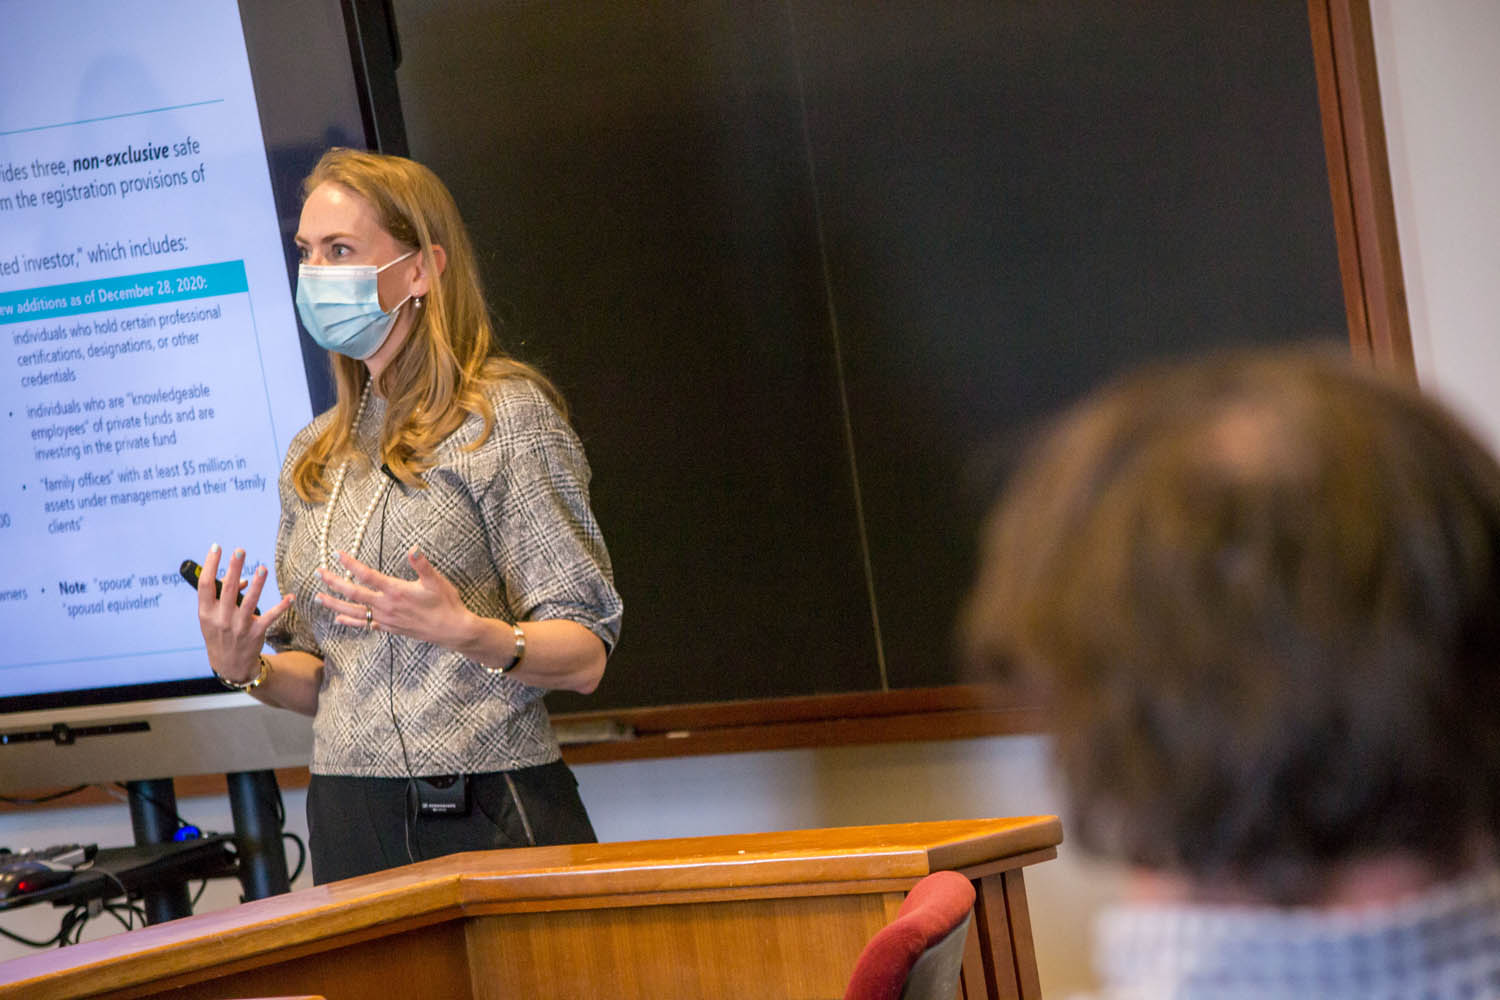 Professor lecturing in mask at front of classroom